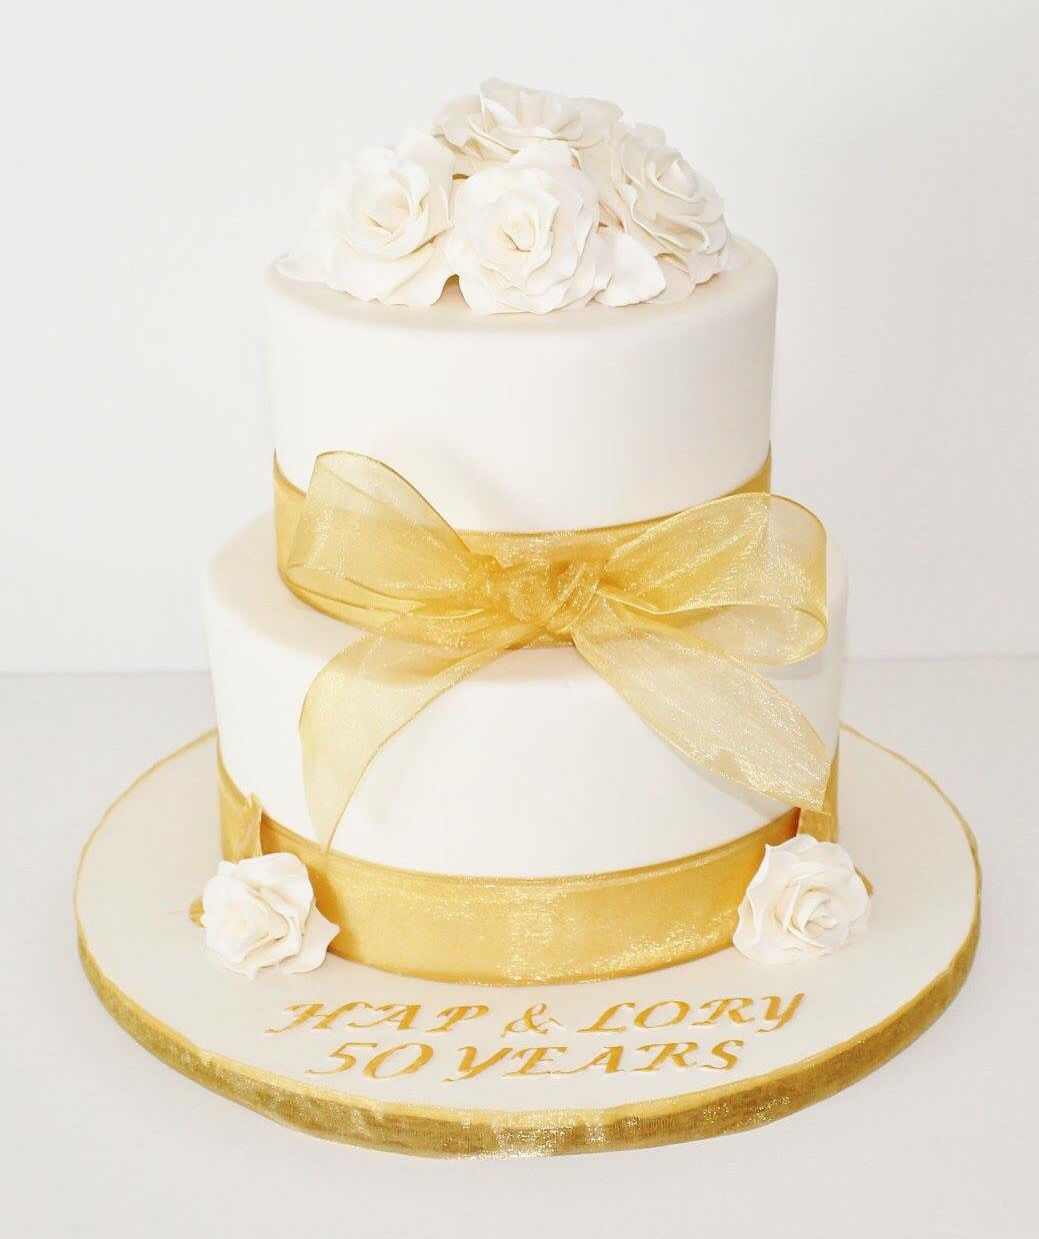 Simply Delicious Cakes